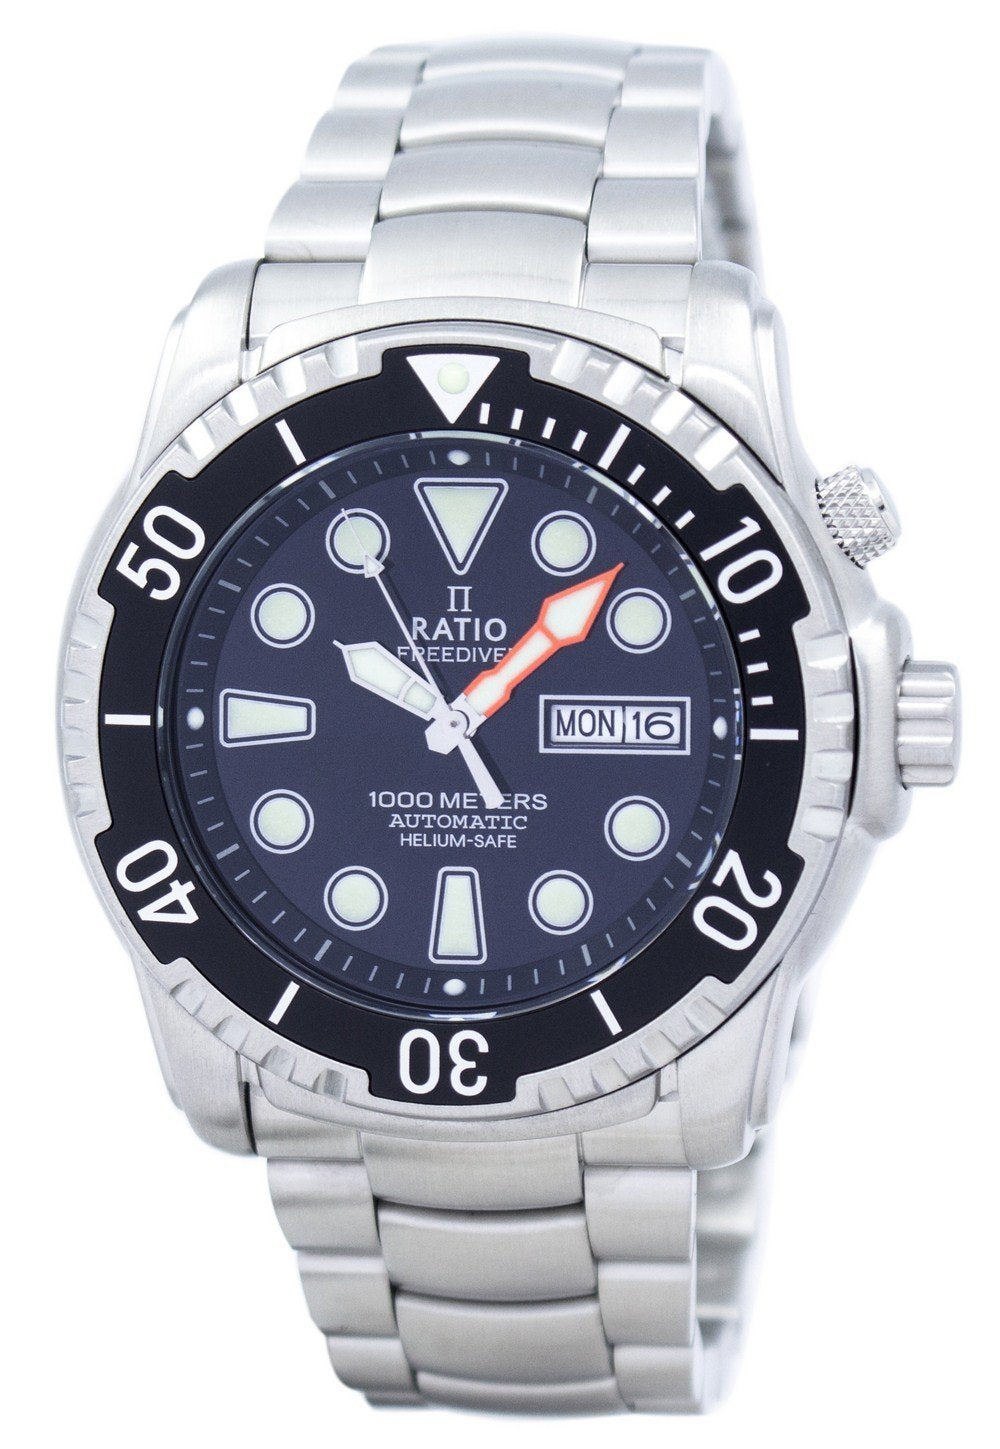 Ratio II Free Diver Helium-Safe 1000M Sapphire Automatic 1068HA96-34VA-00 Men's Watch